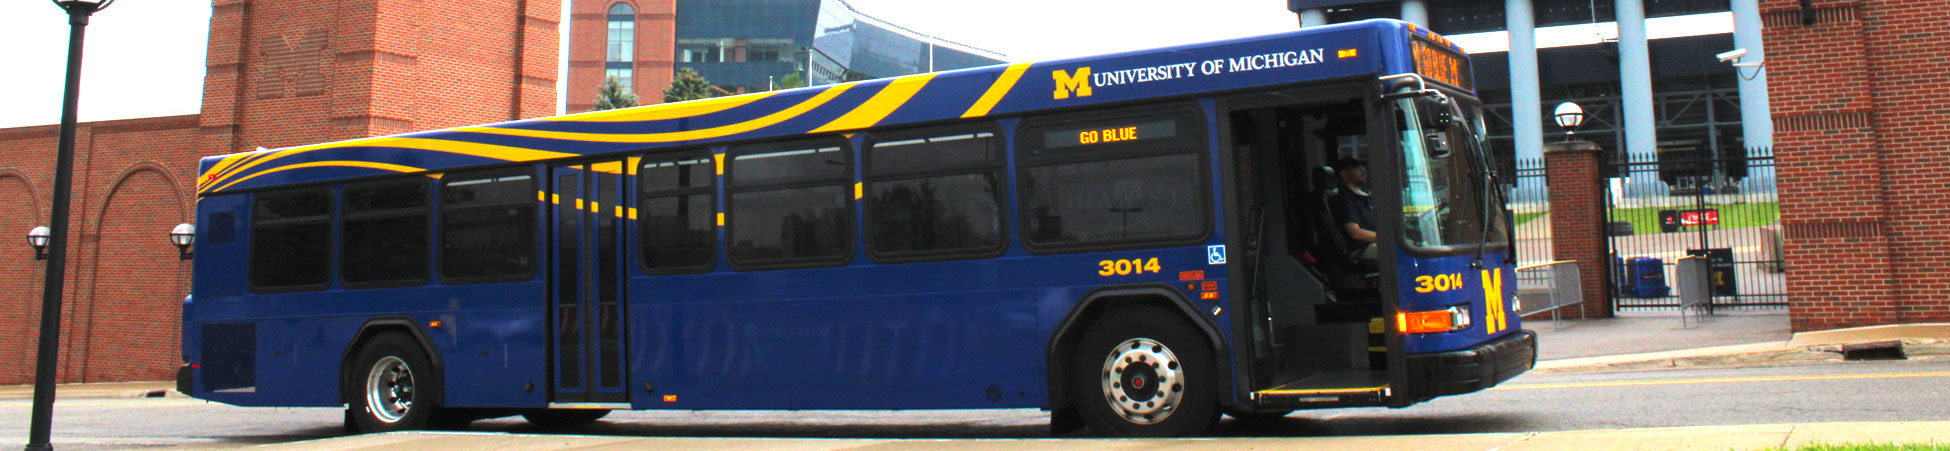 Diversity, Equity, and Inclusion/UM bus picture